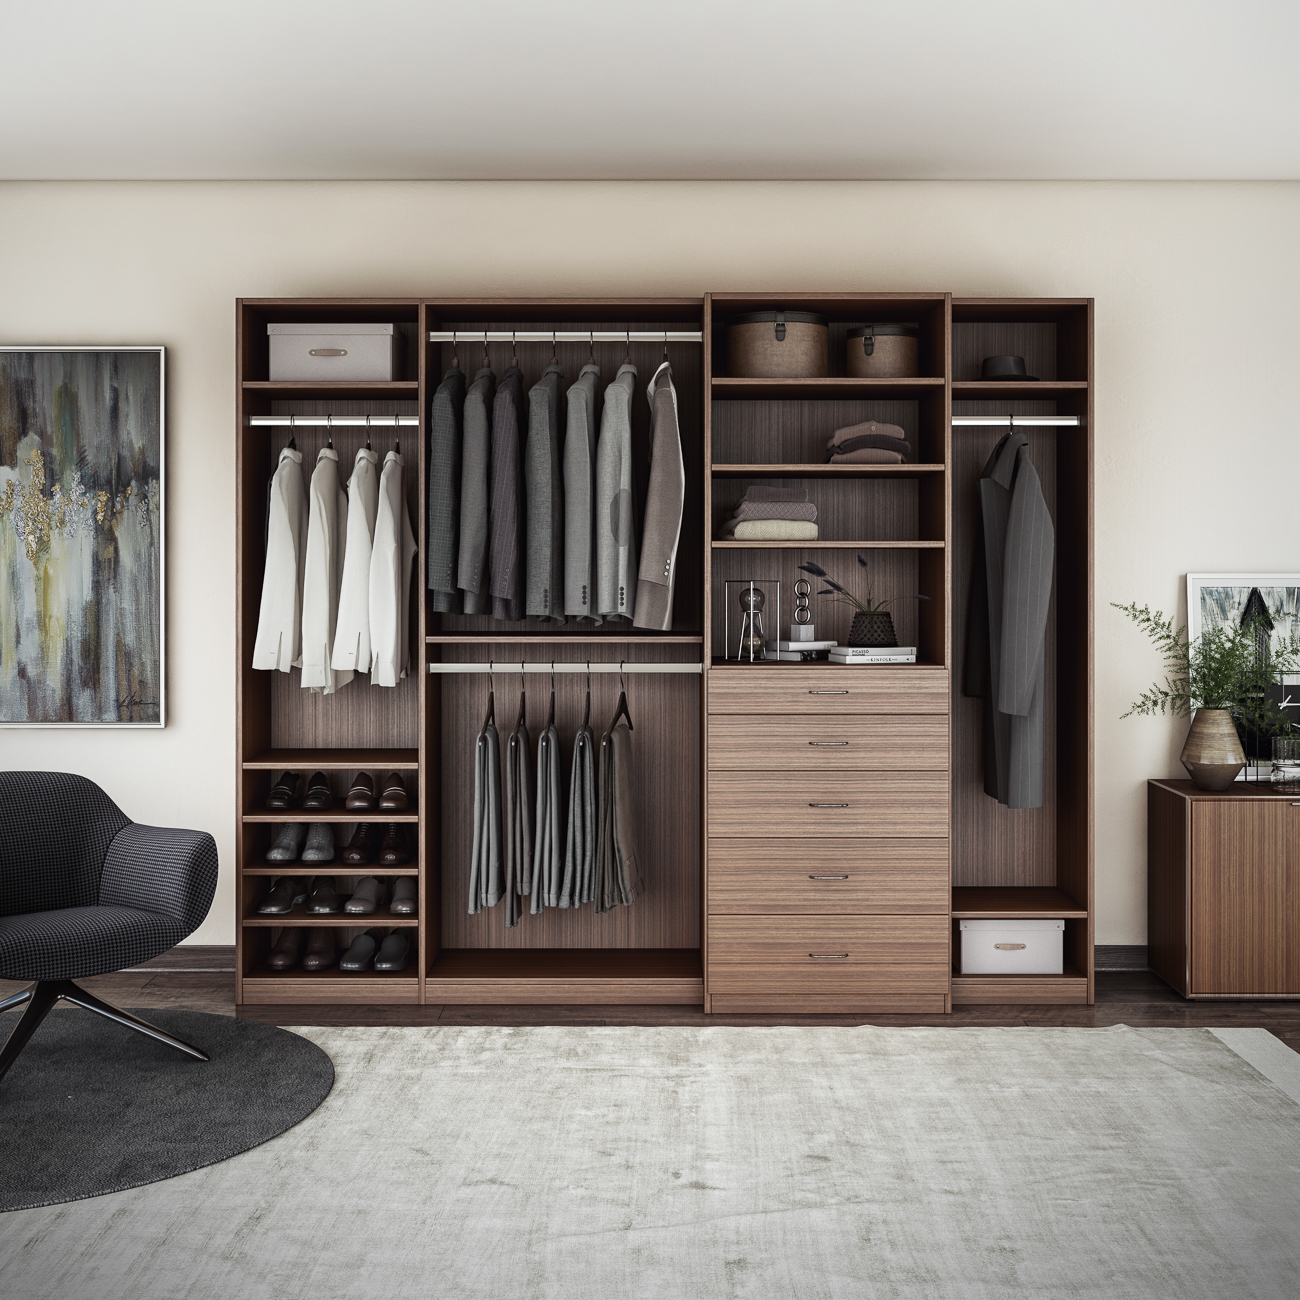 Your space is a reflection of your personality with the functionality and the aesthetics you value. Closets By Design understands this and distinguishes itself through a personalized approach to every project. They provide a truly collaborative effort between client and designer. Each designer meets with the client in their home and hand sketches the plan. Simple or elaborate, they're experts at helping each individual craft the space of their dreams all within their budget. / Image courtesy of Closets By Design // Published: 1.11.19